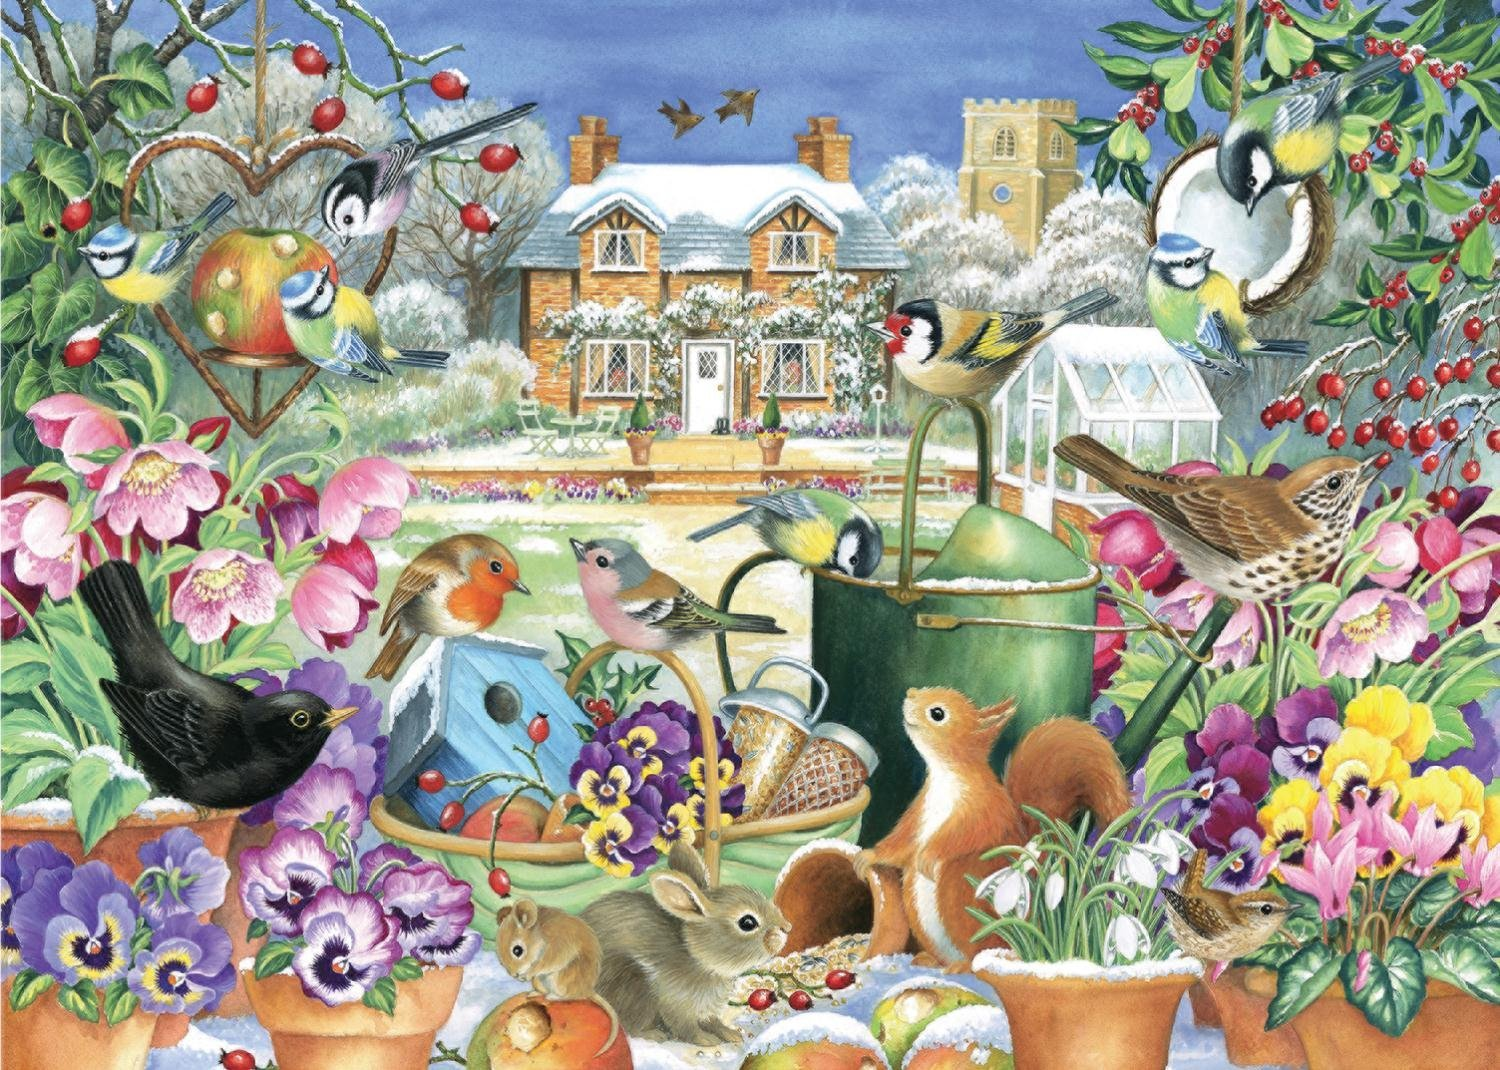 falcon-claire-comerford-winter-garden-1000-teile-puzzle-jumbo-11130